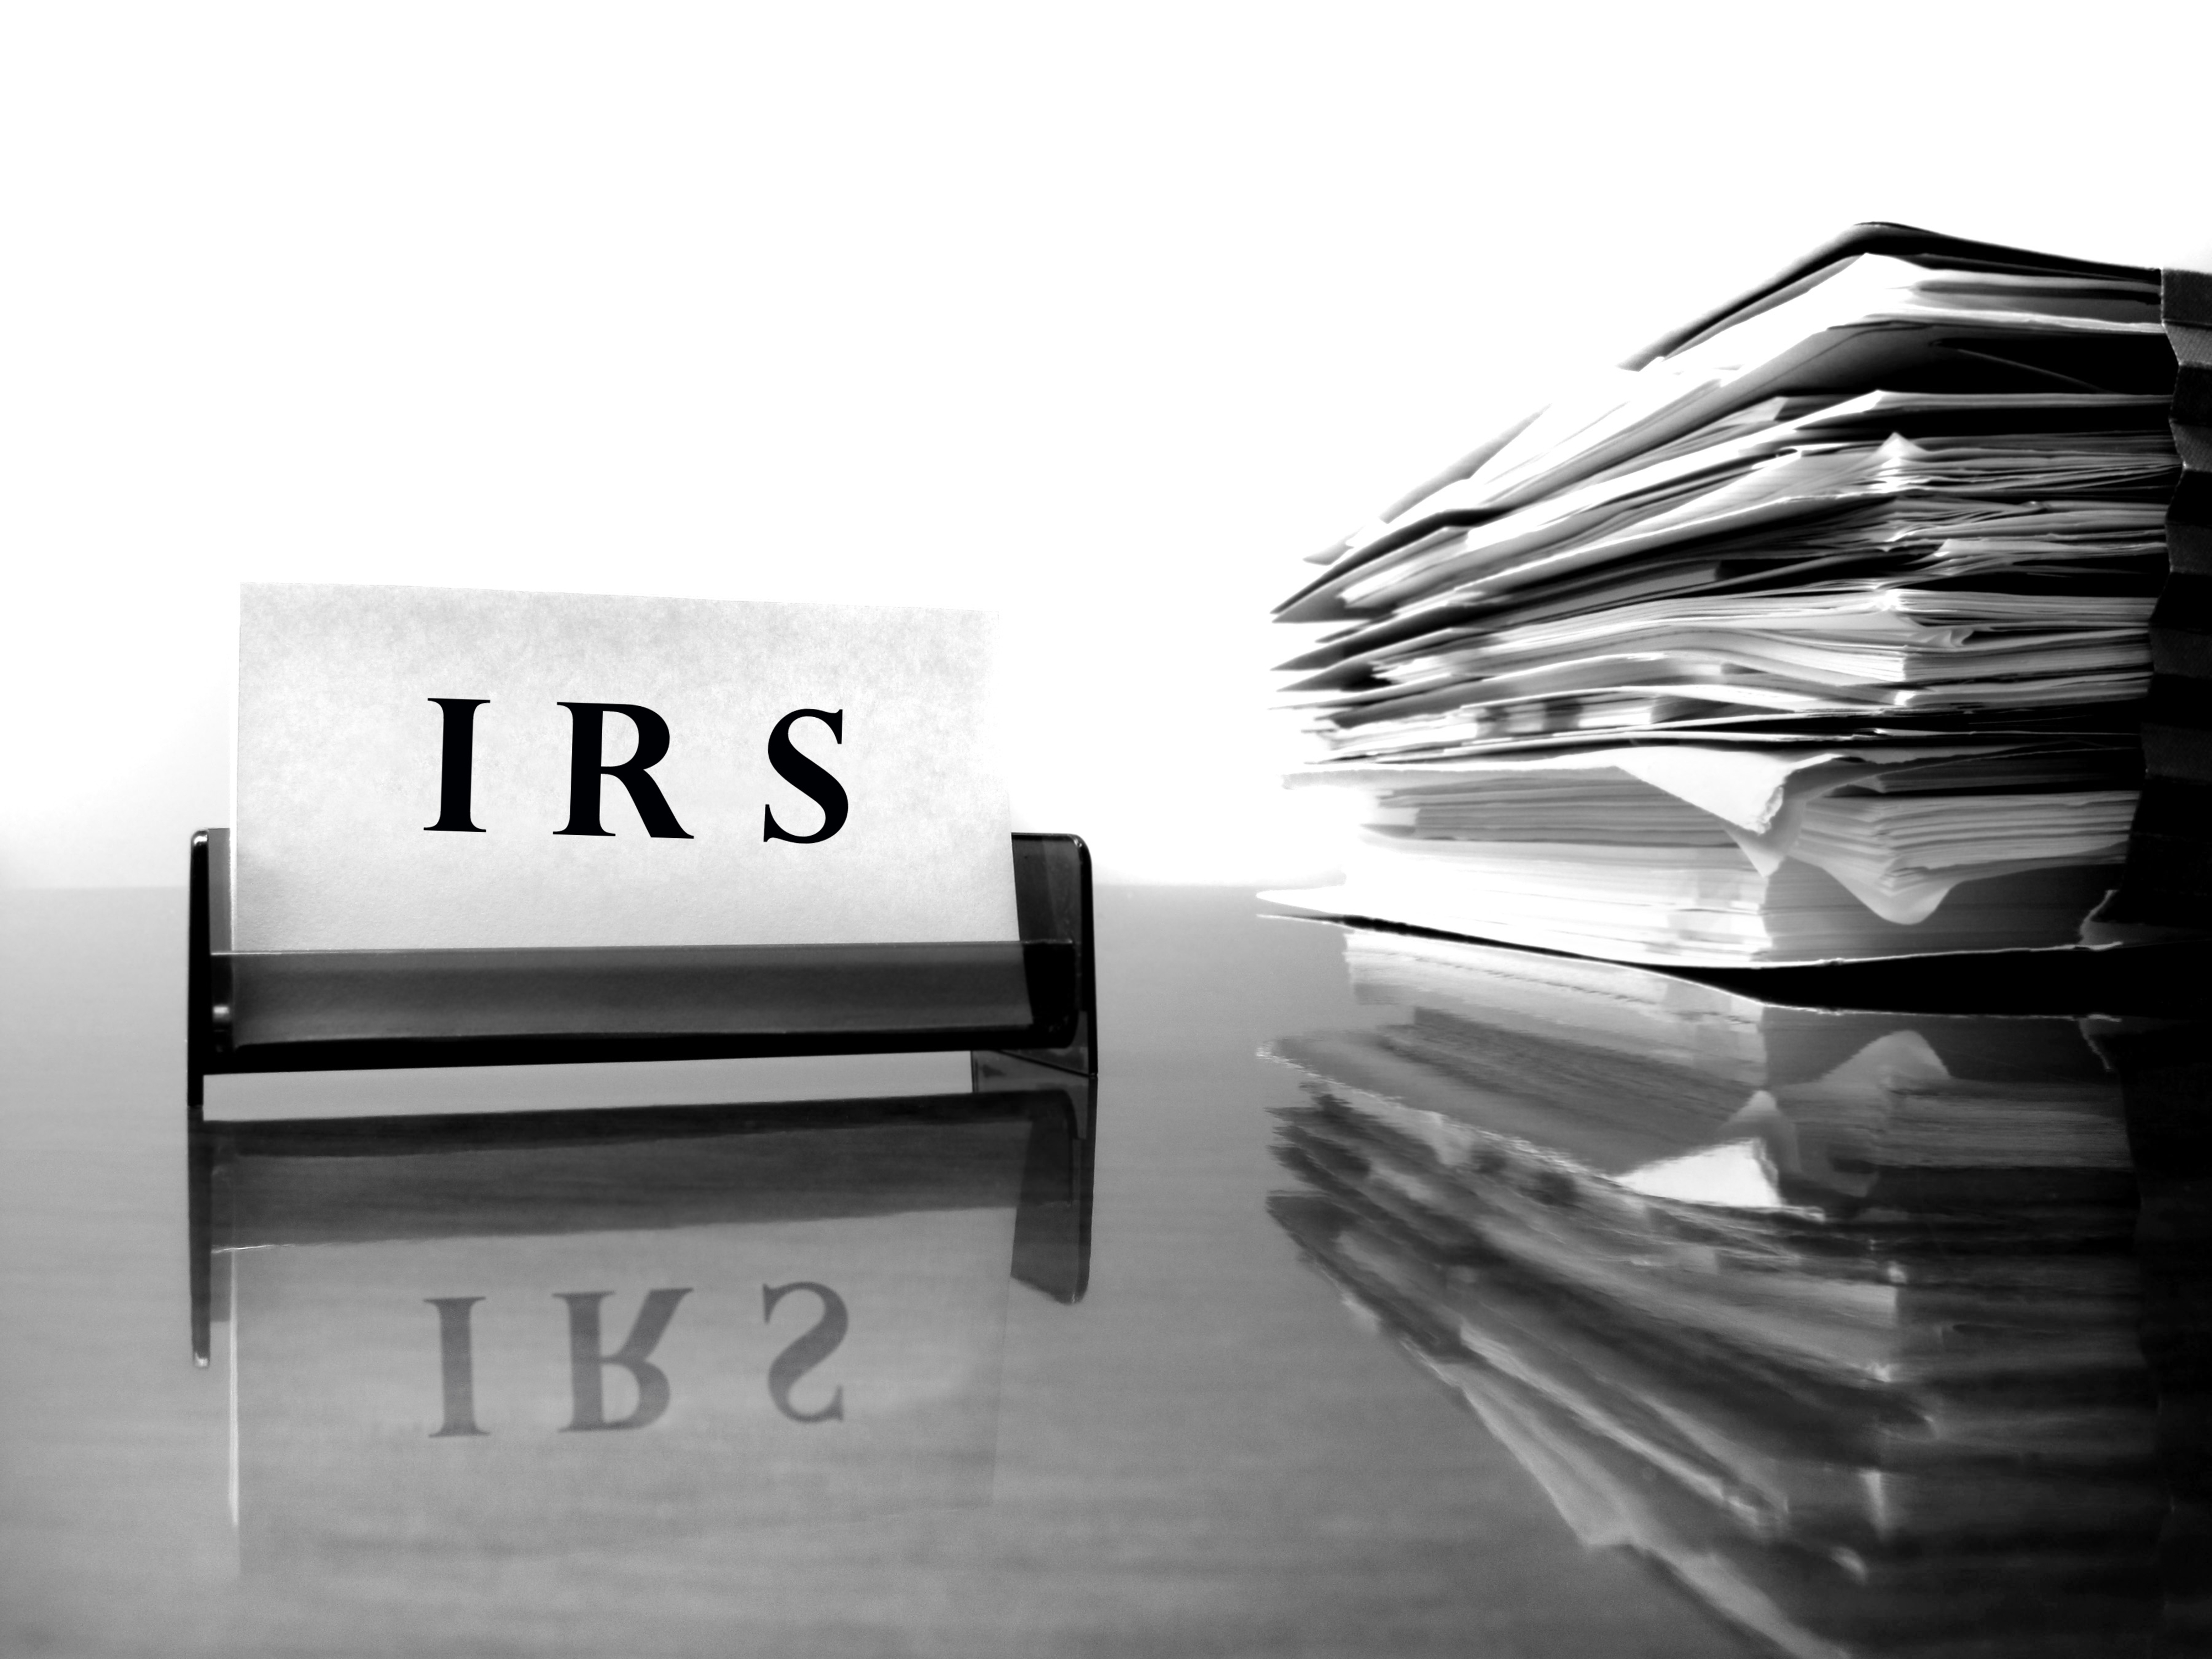 audit  irs improperly withholding information requested by